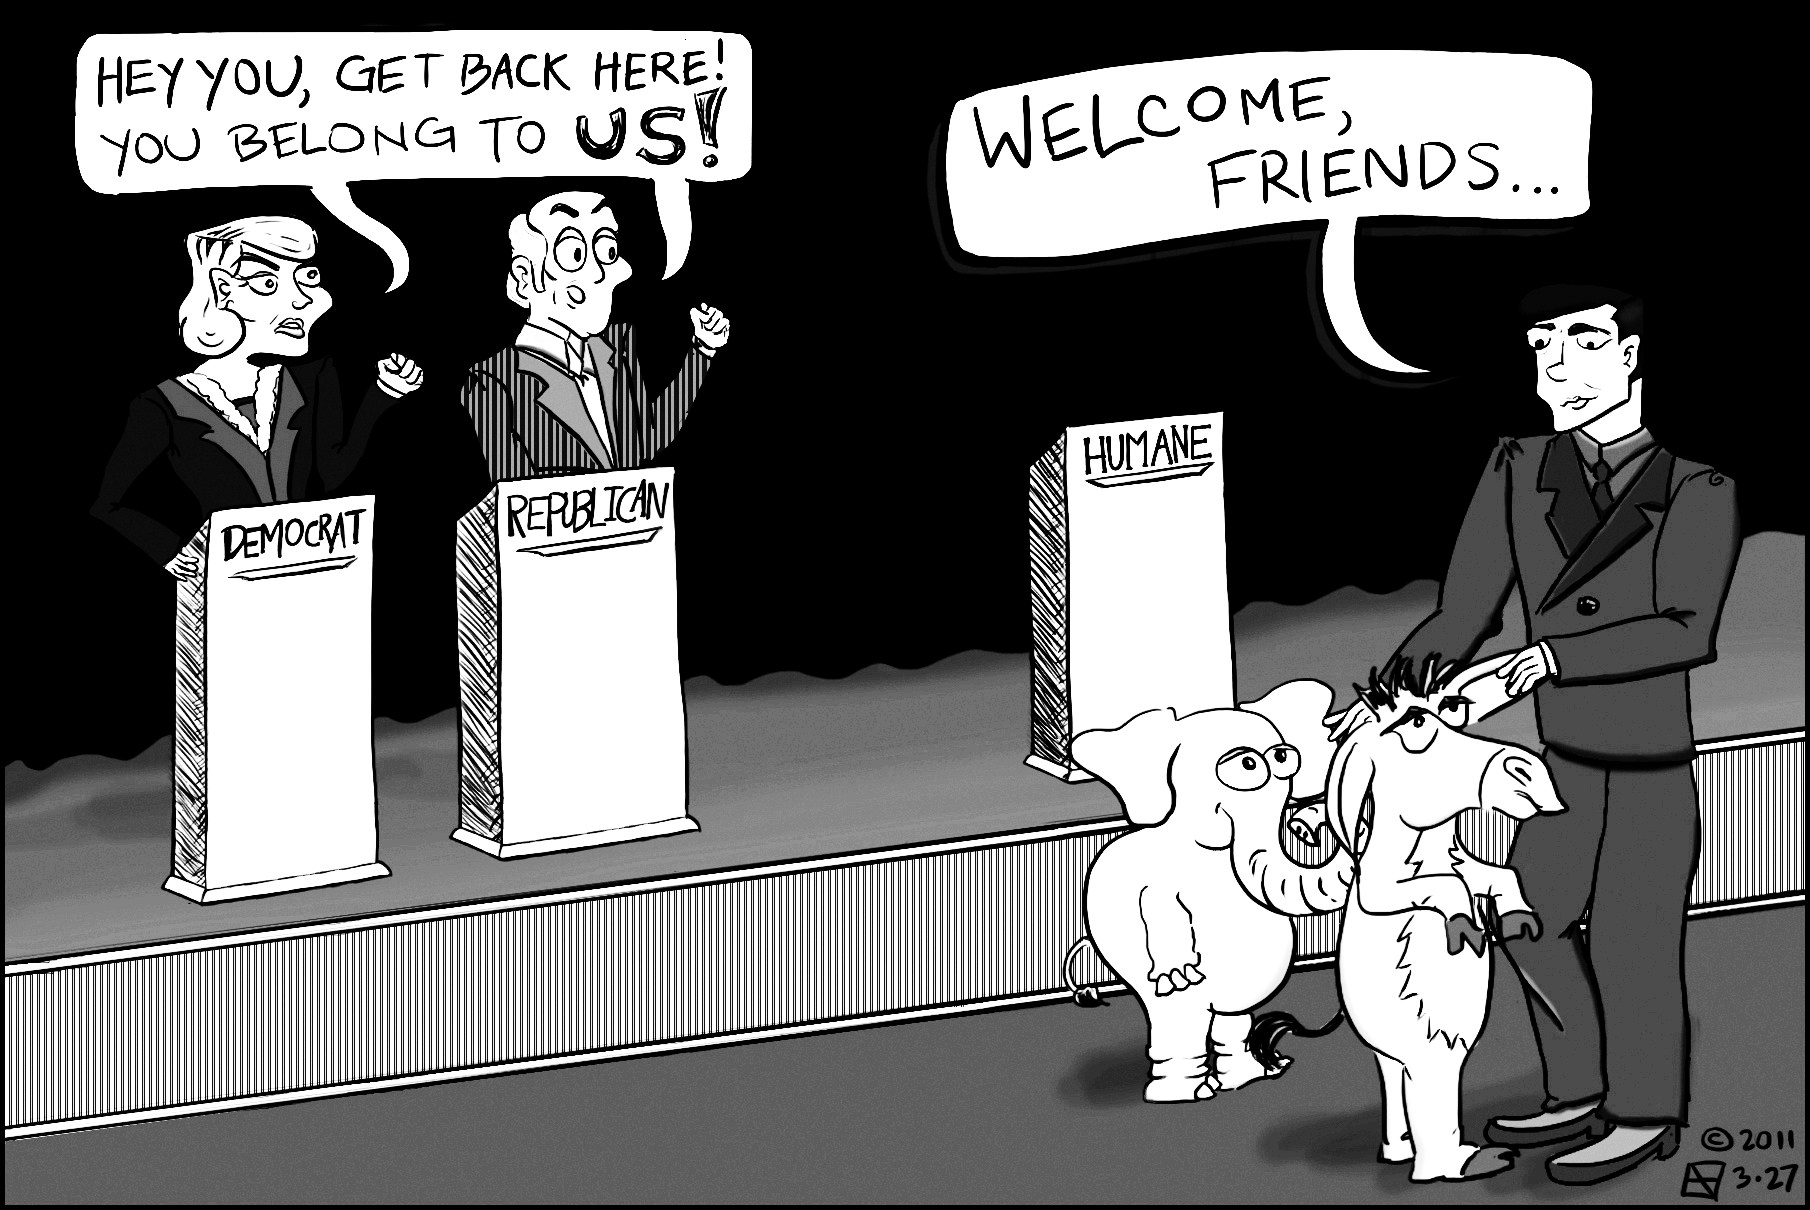 Editorial cartoon (dated 03.27.2011) by Laine Gieser